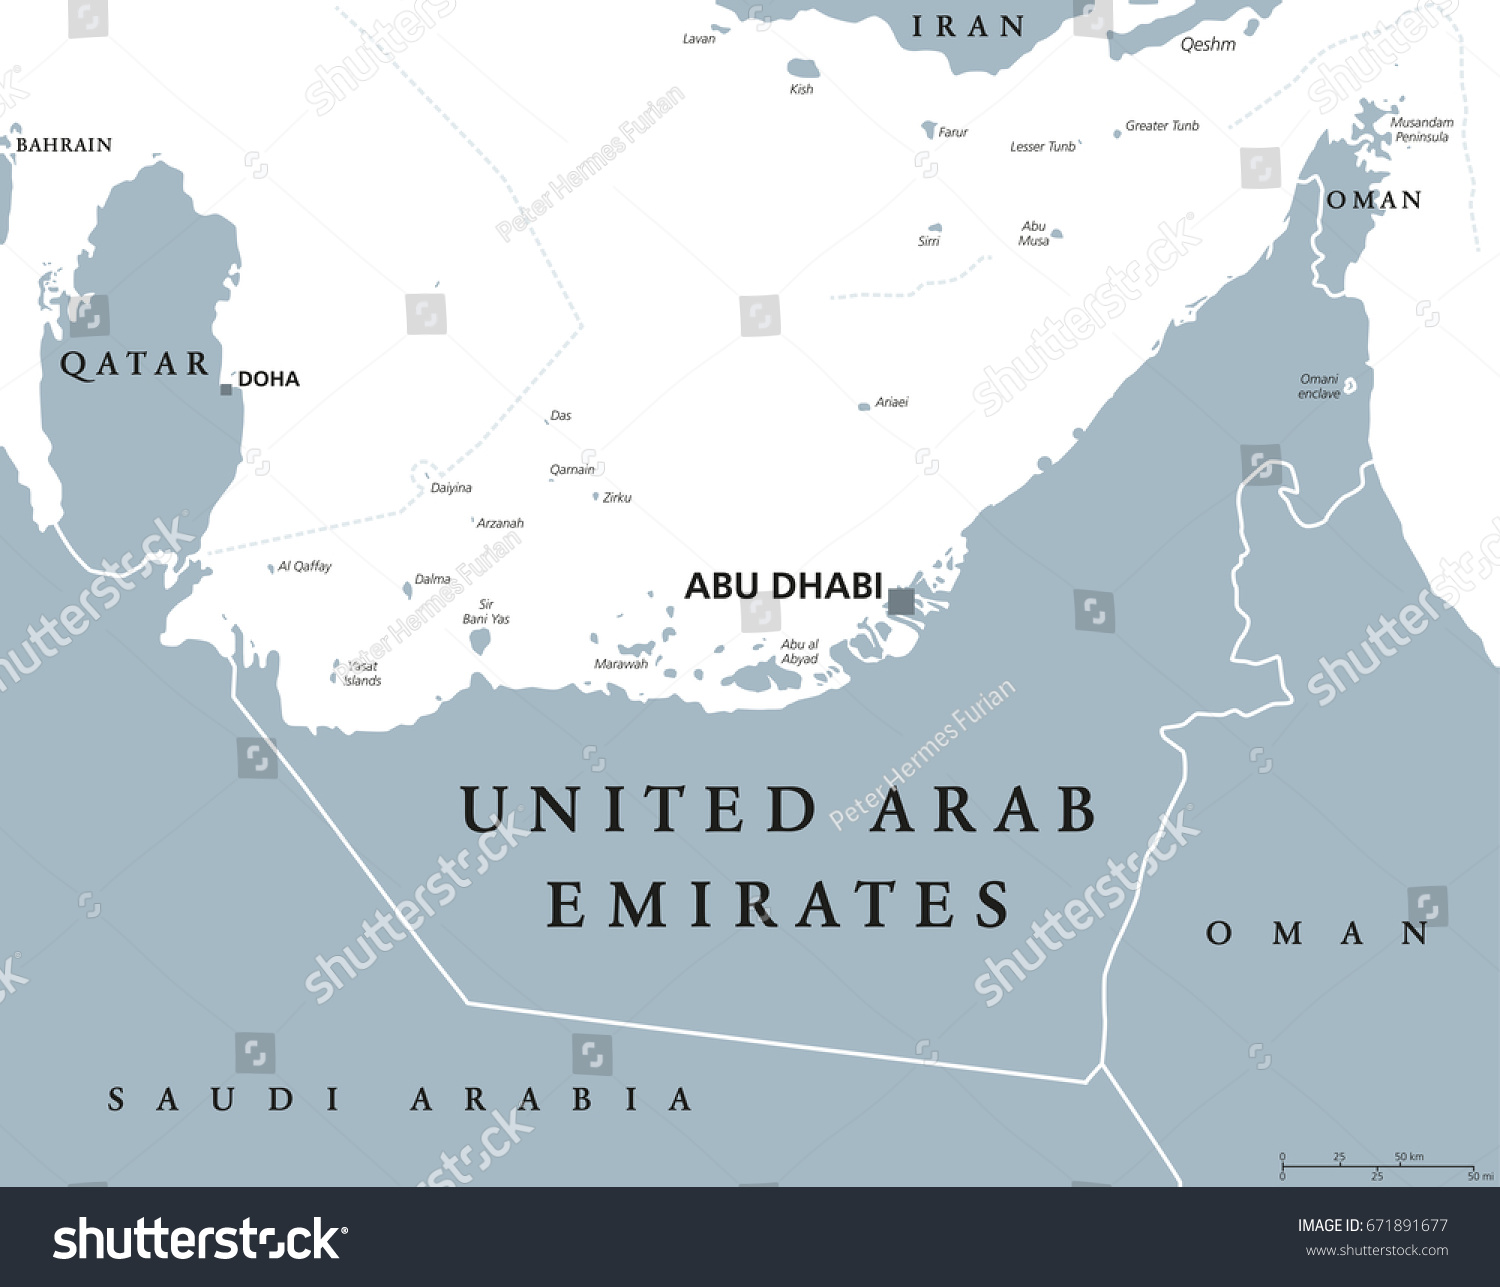 United arab emirates political map capital vectores en stock united arab emirates political map with capital abu dhabi uae emirates a monarchy gumiabroncs Gallery